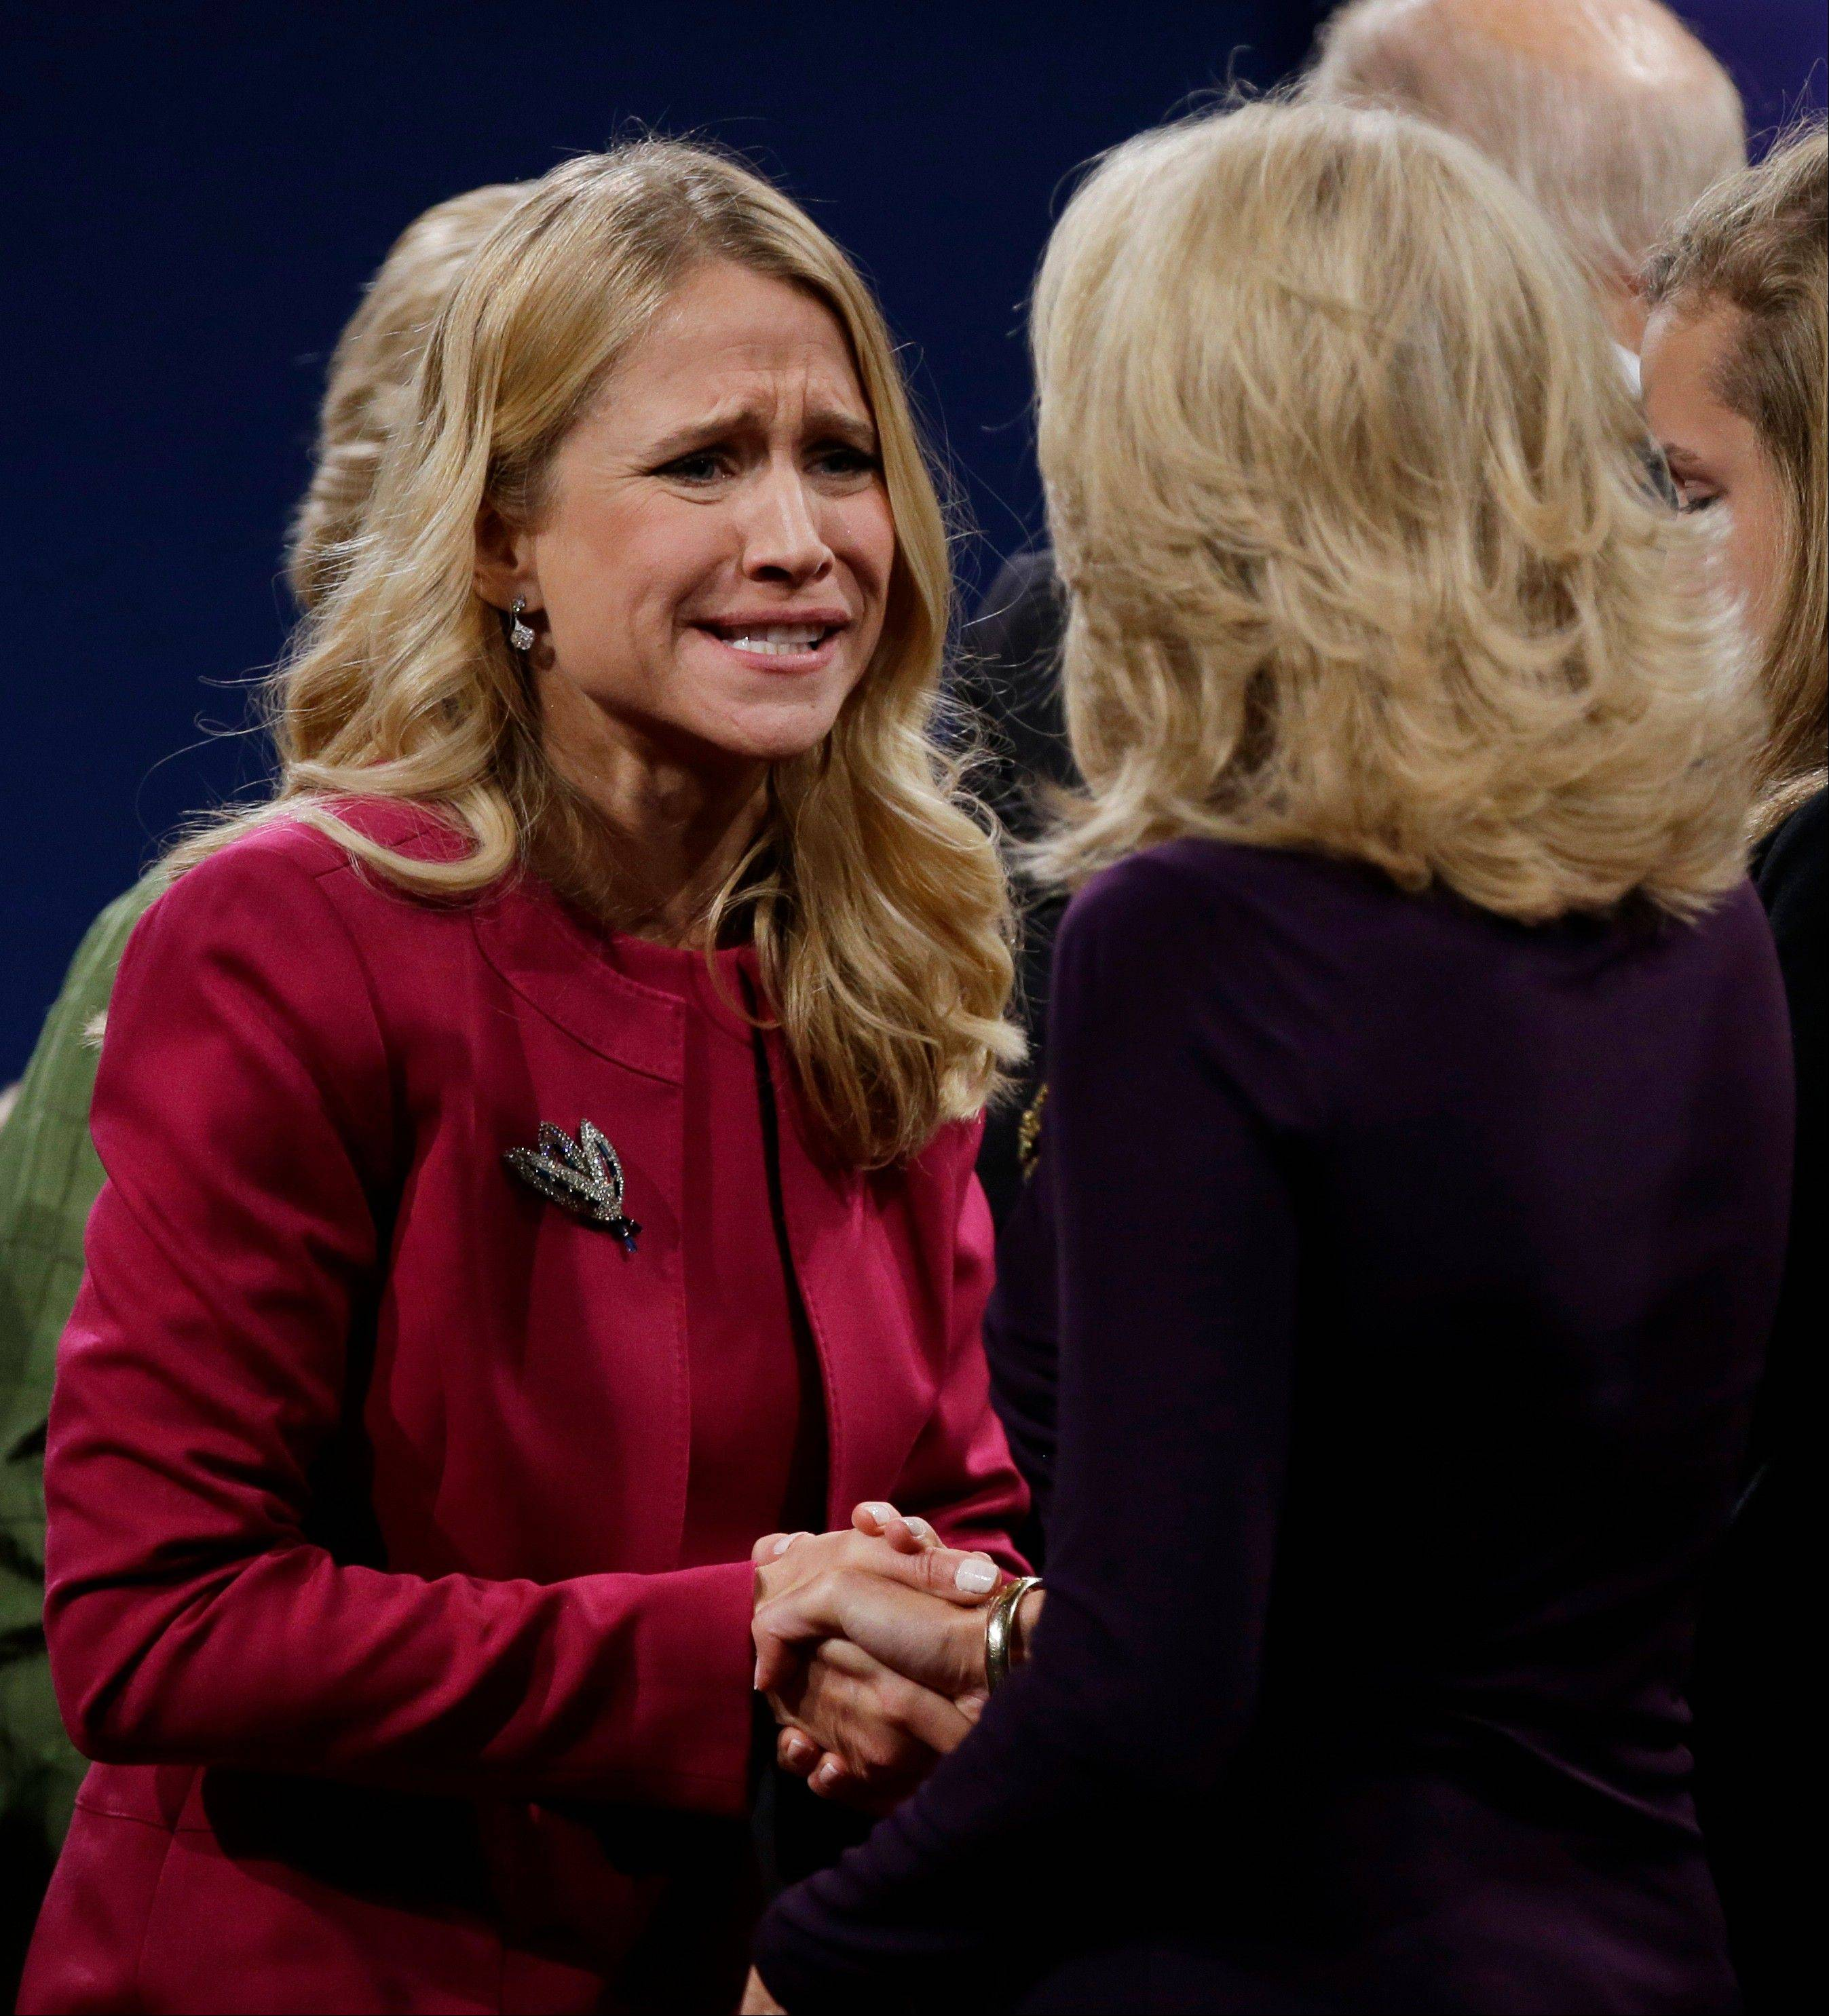 Republican vice presidential nominee Rep. Paul Ryan's wife Janna, left, shakes hands with Jill Biden, wife of Vice President Joe Biden, following the vice presidential debate at Centre College in Danville, Ky.